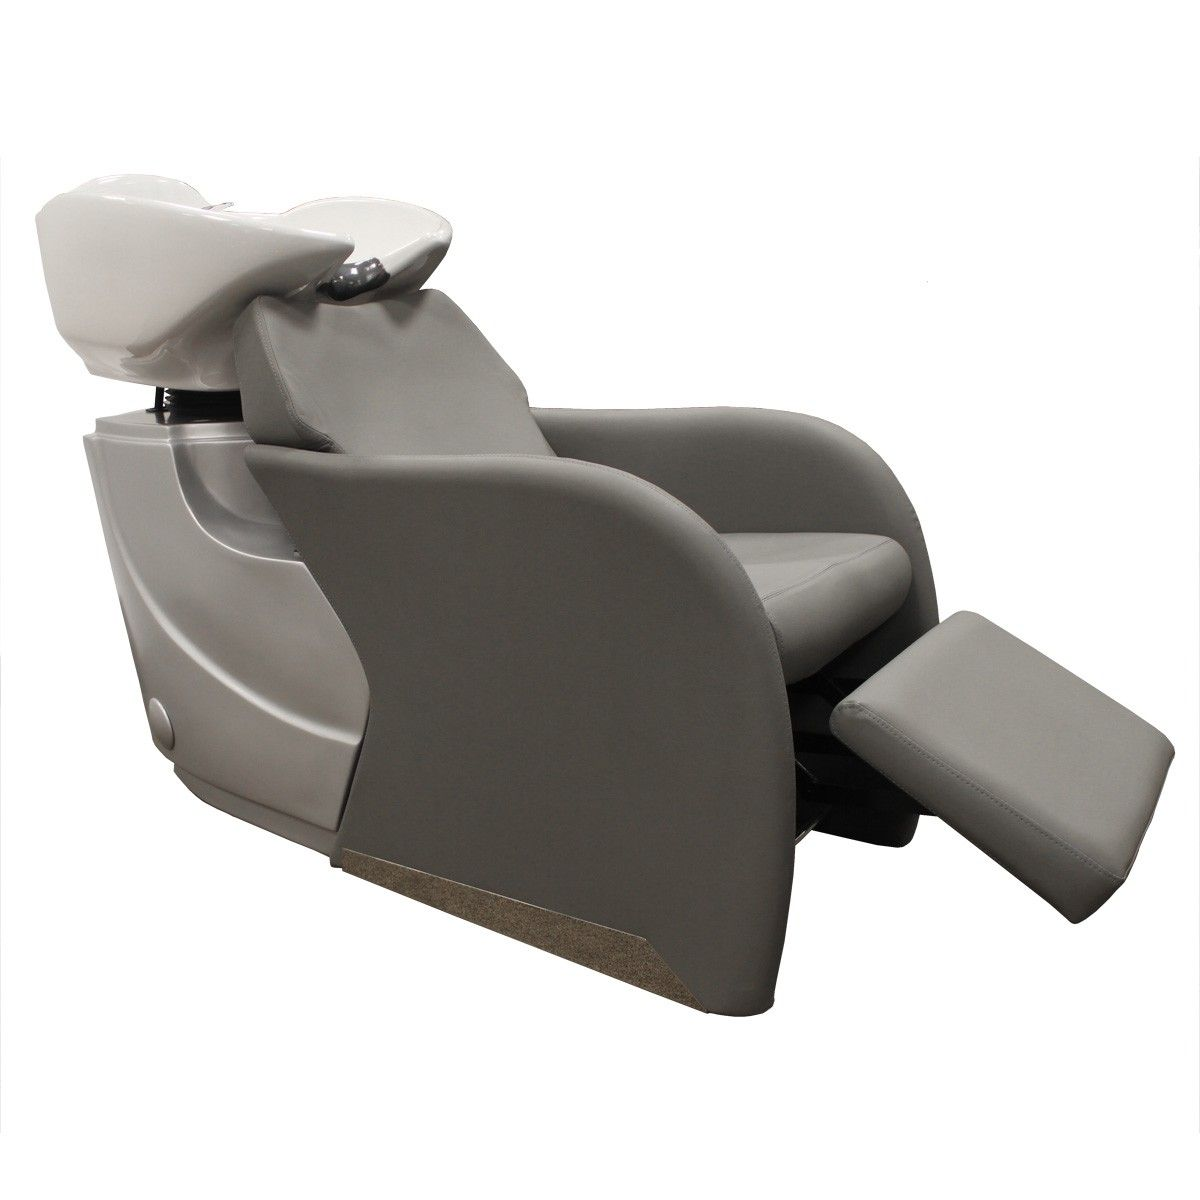 Avery backwash shampoo system in gray with white bowl